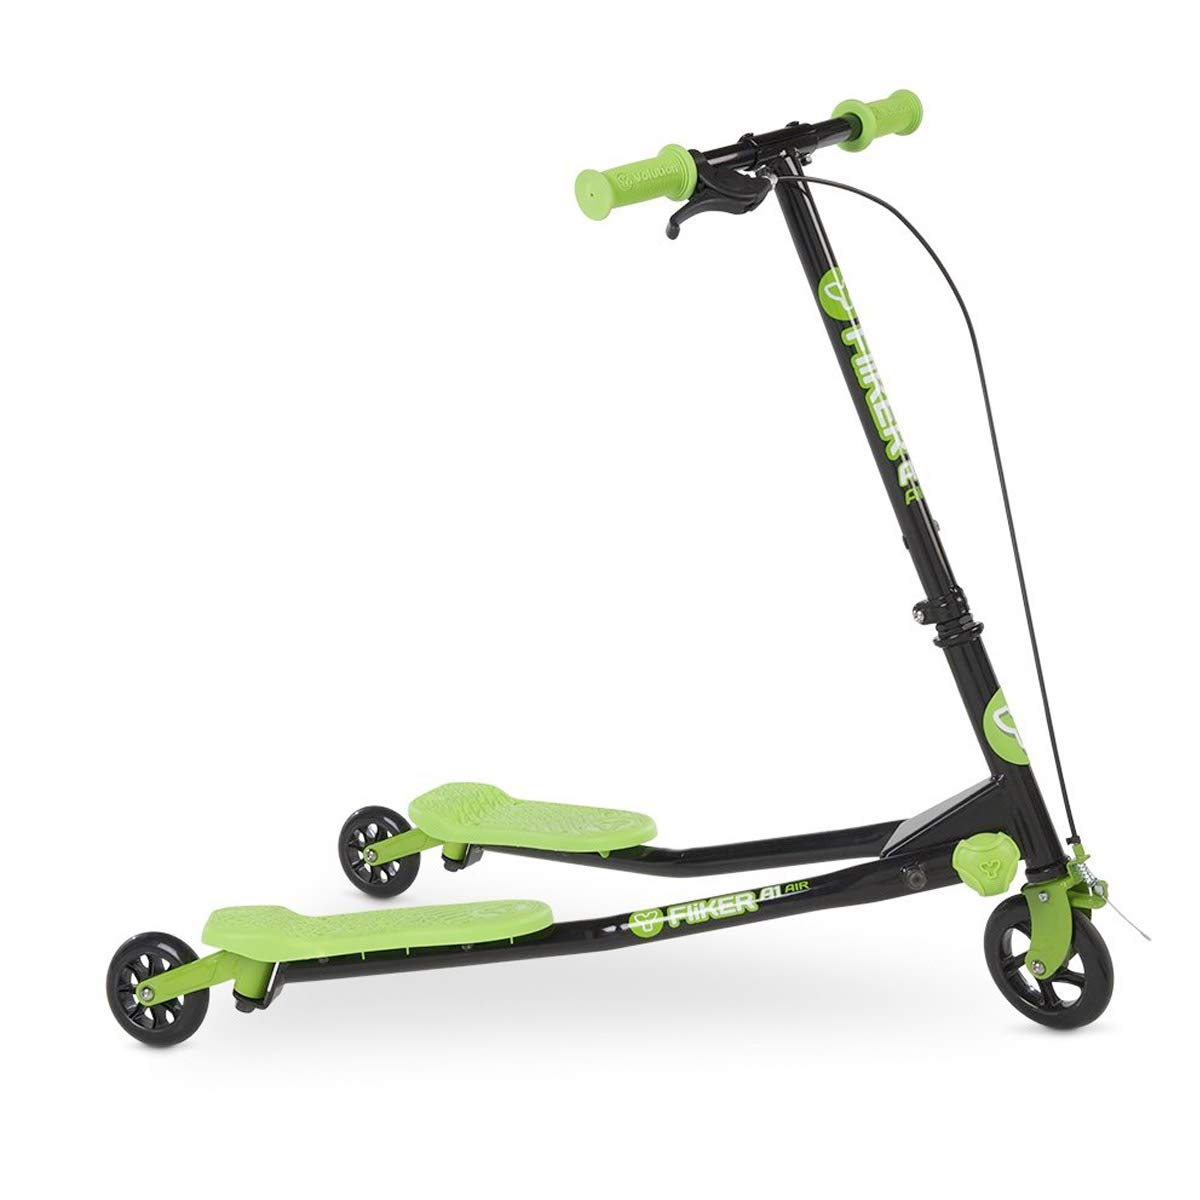 Y Fliker Scooter >> Amazon Com Yvolution Y Fliker A1 Kids Scooter Green Toys Games